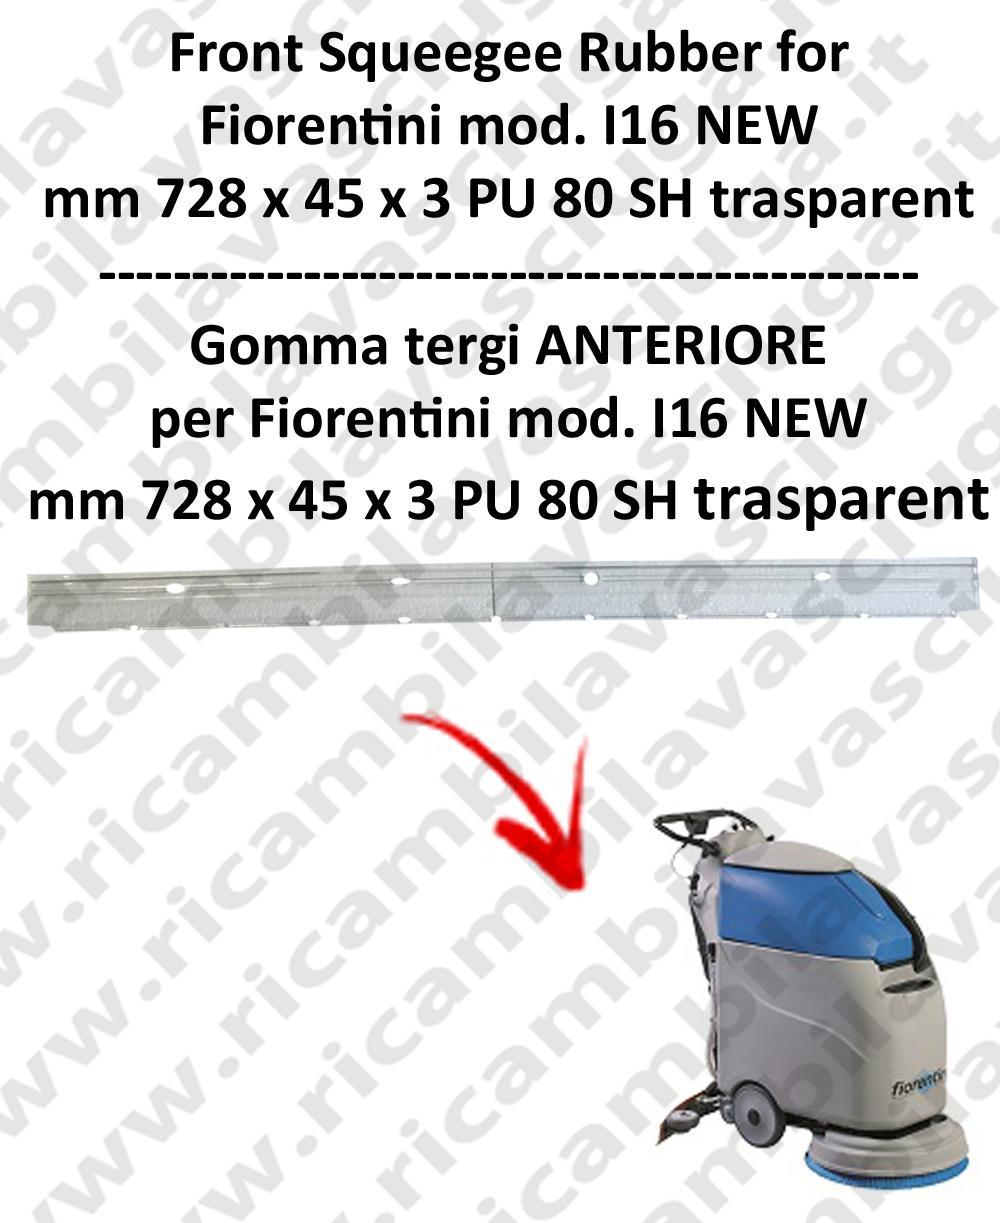 I16 NEW squeegee rubber front for scrubber dryer  FIORENTINI